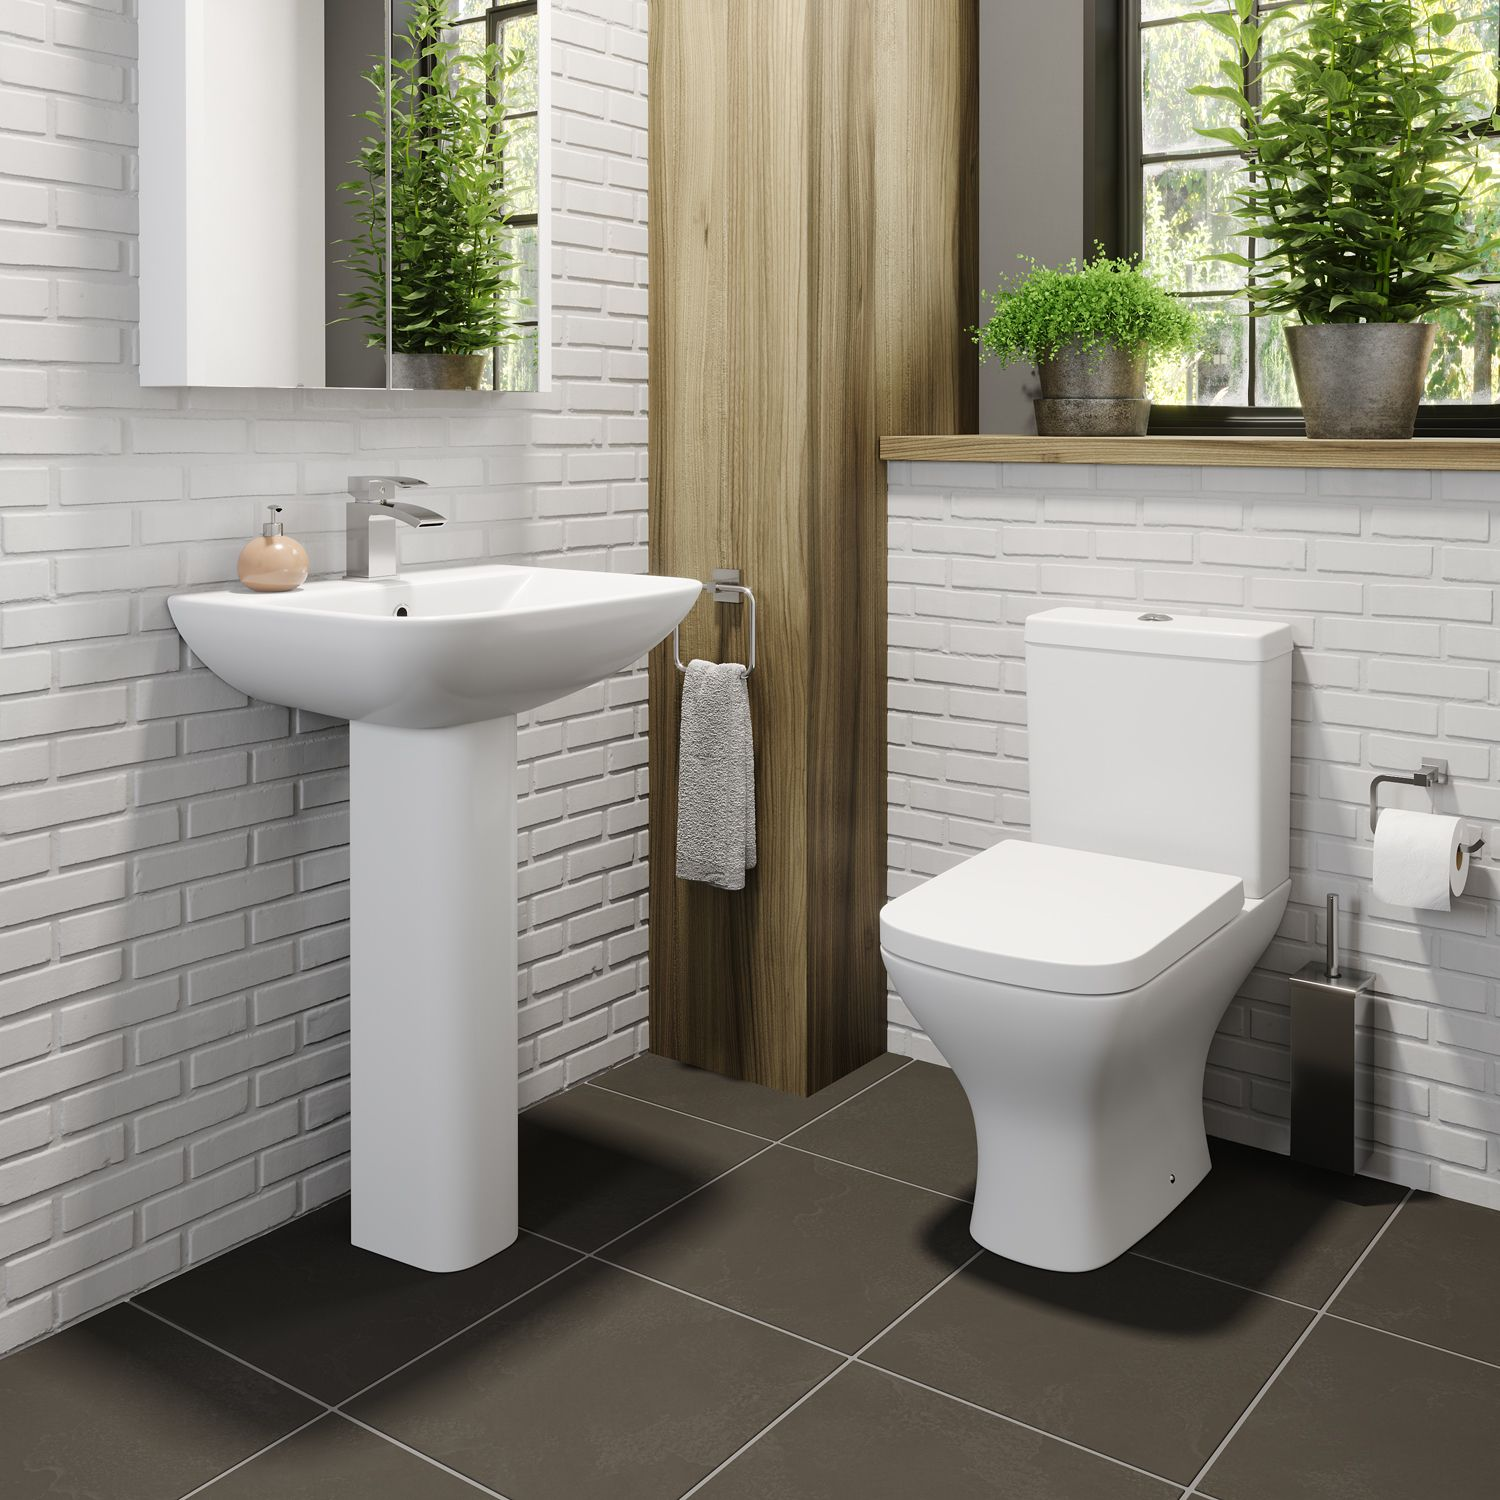 Marseille Cloakroom Suite Cloakroom Suites Space Saving Toilet Cloakroom